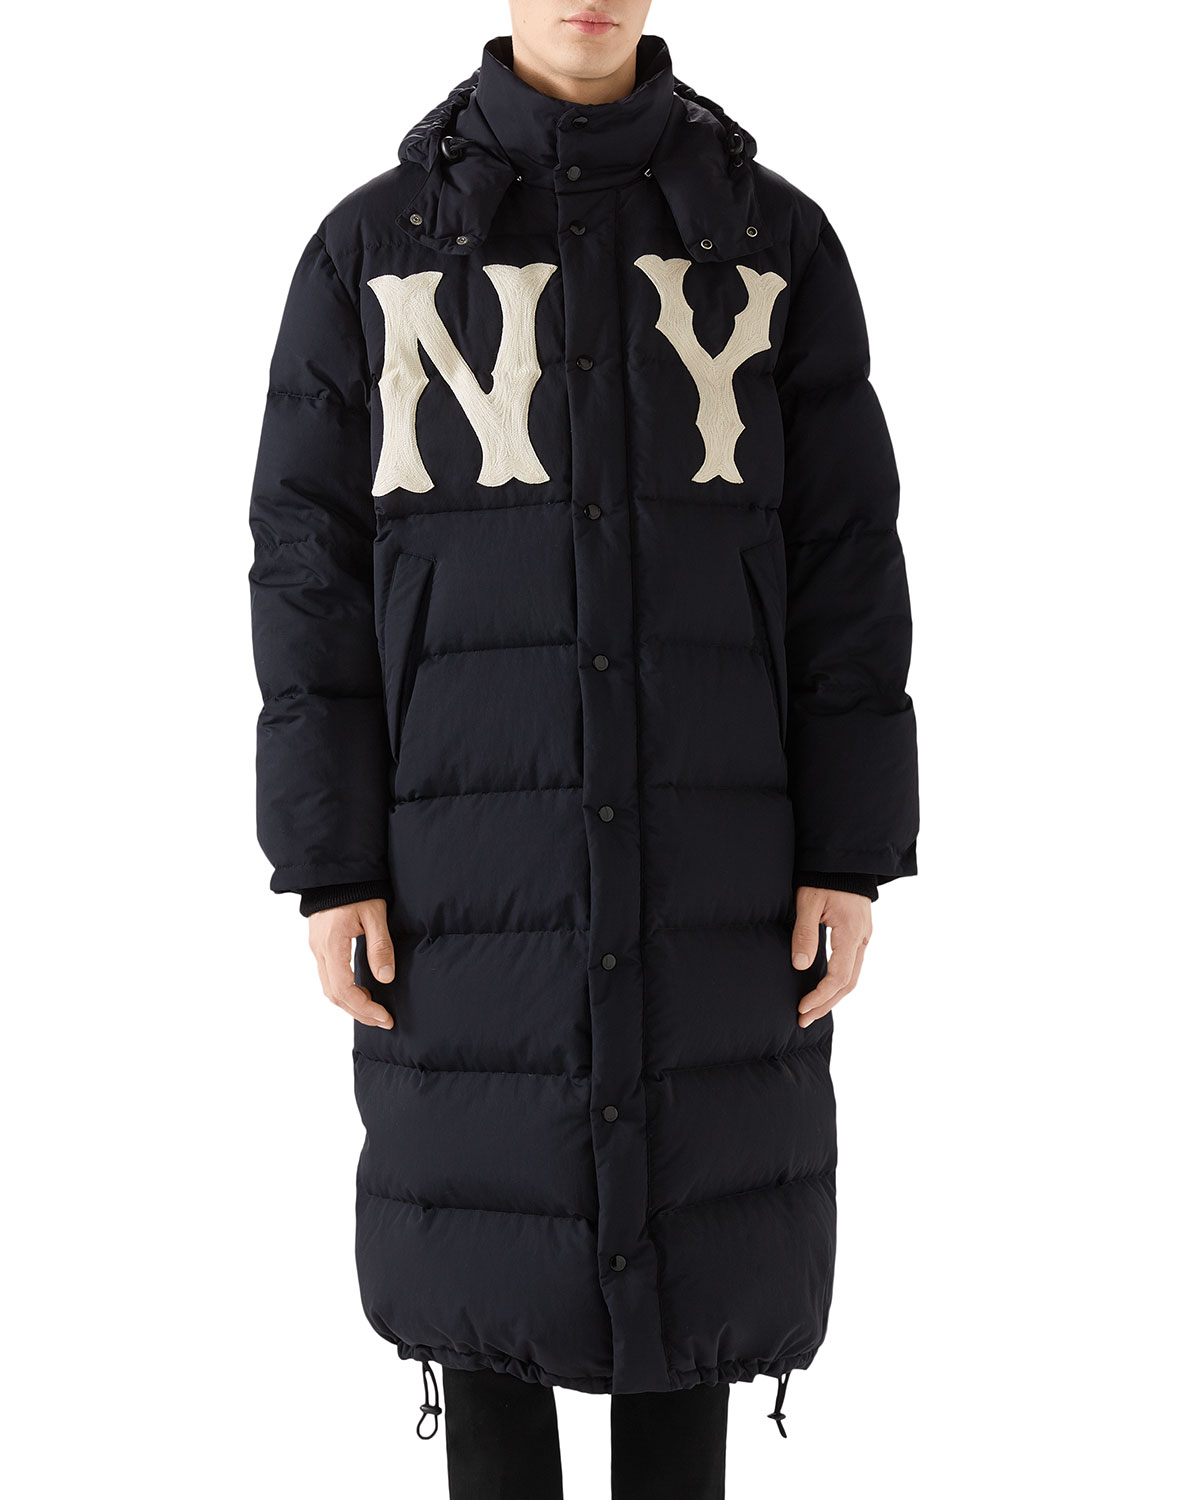 ad597624c29 Gucci Men s NY Yankees MLB Long Puffer Parka Coat